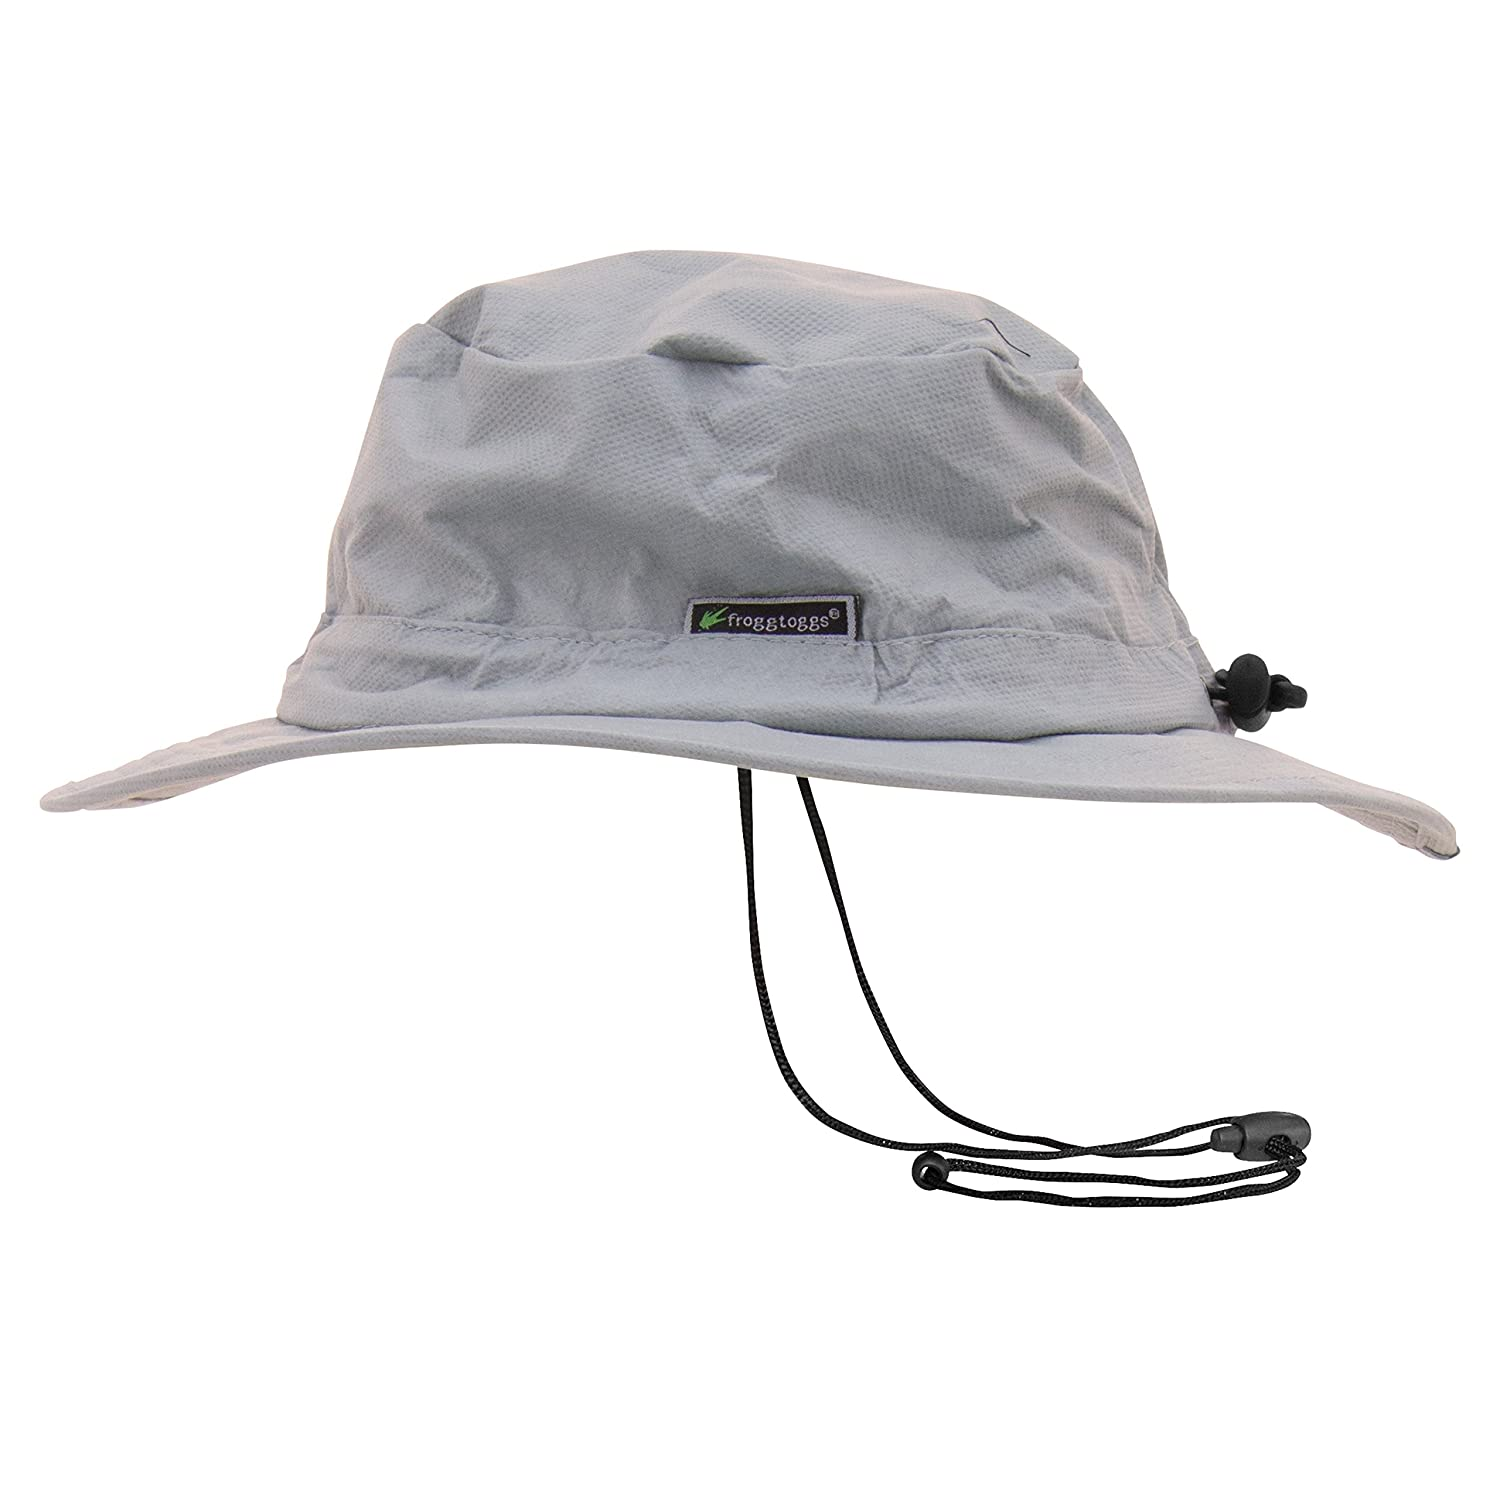 2059d0383f3 Frogg Toggs Waterproof Breathable Bucket Hat